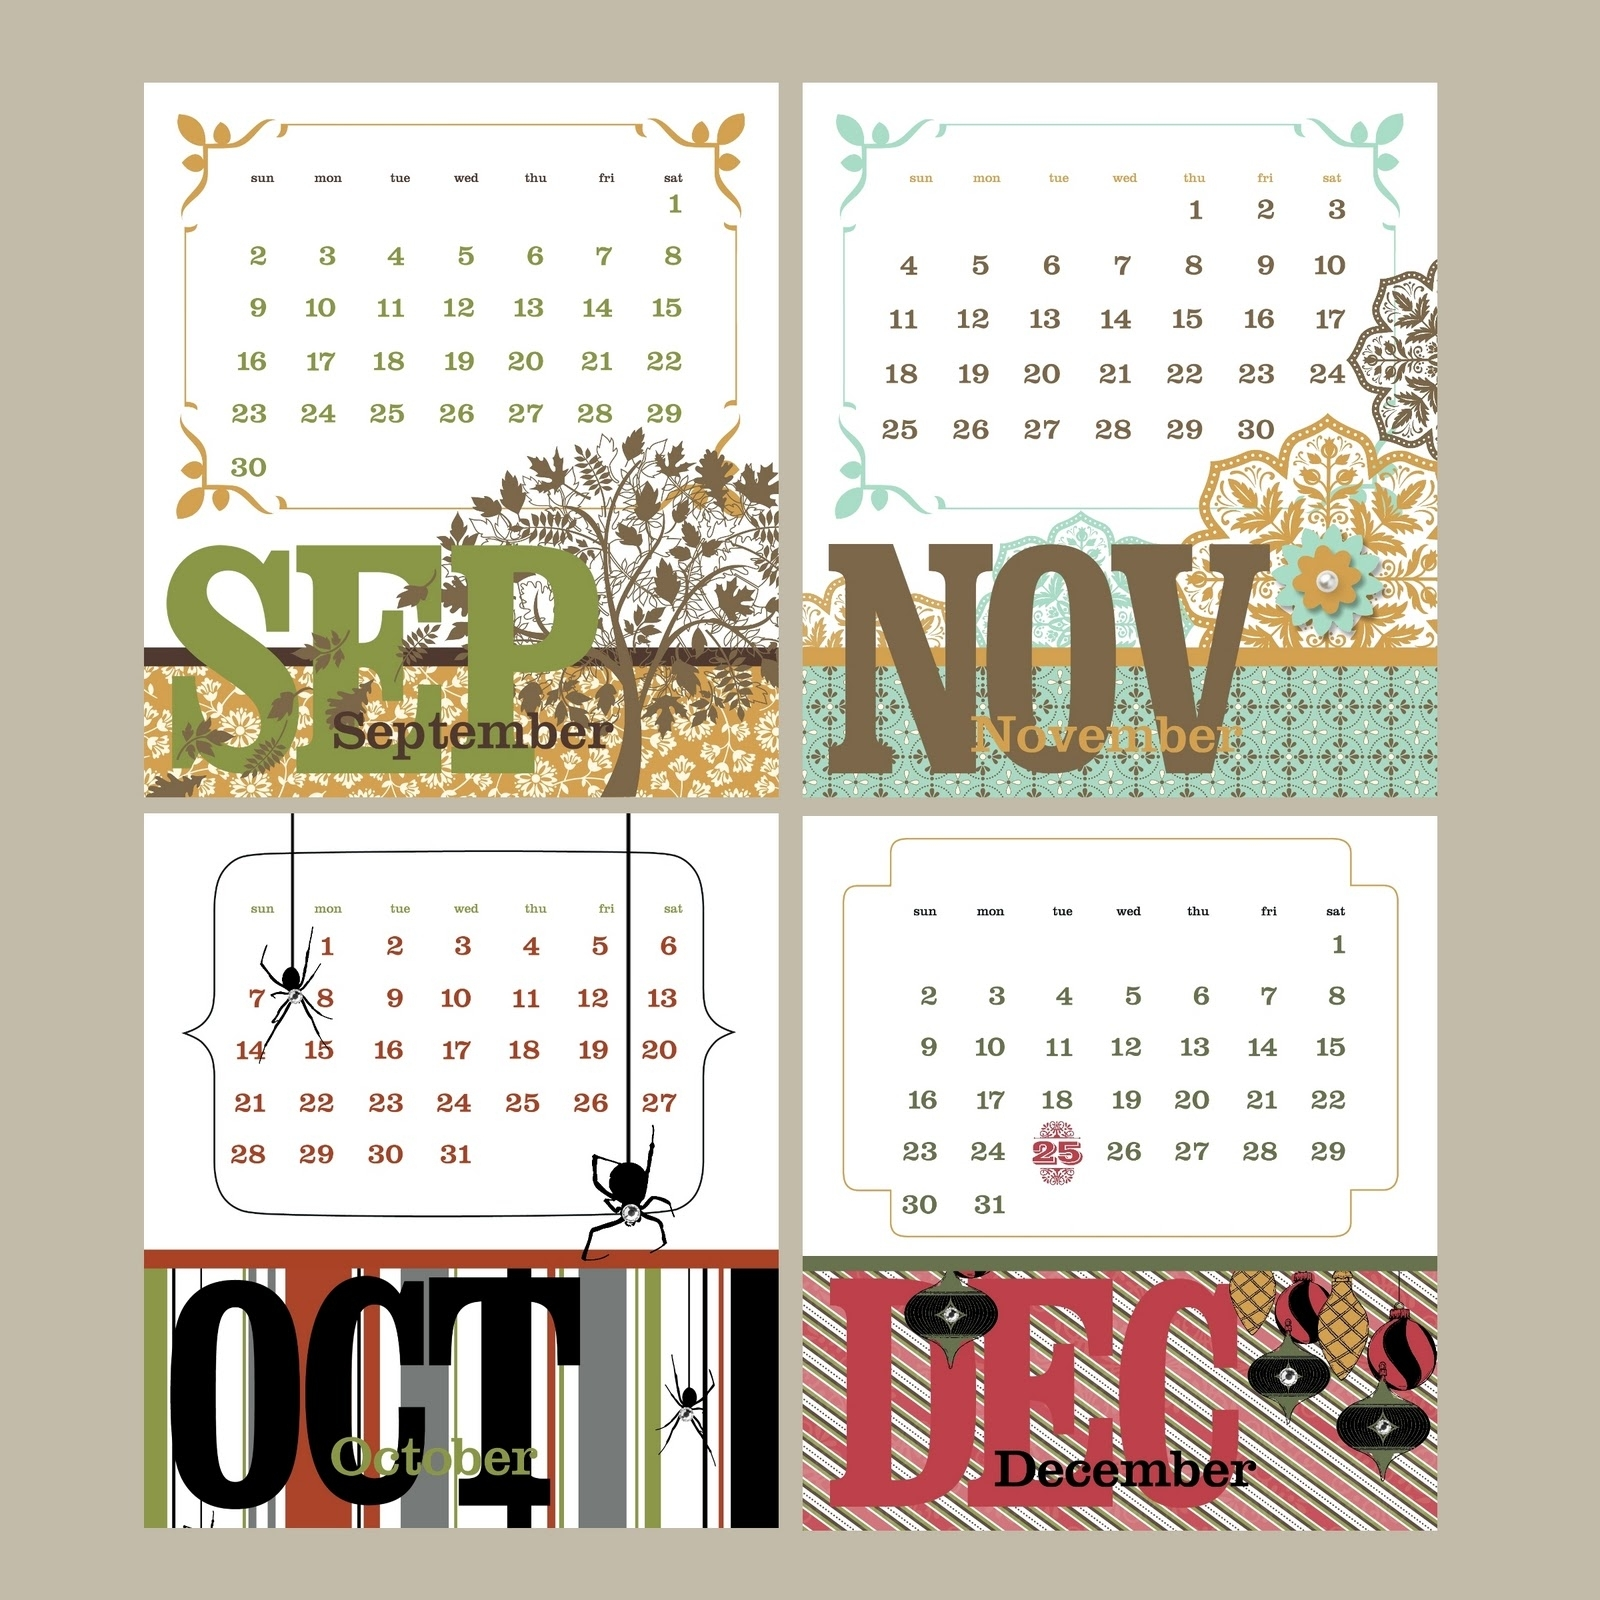 Nutmeg Creations: Calendars - Mds Blog Hop Week 14